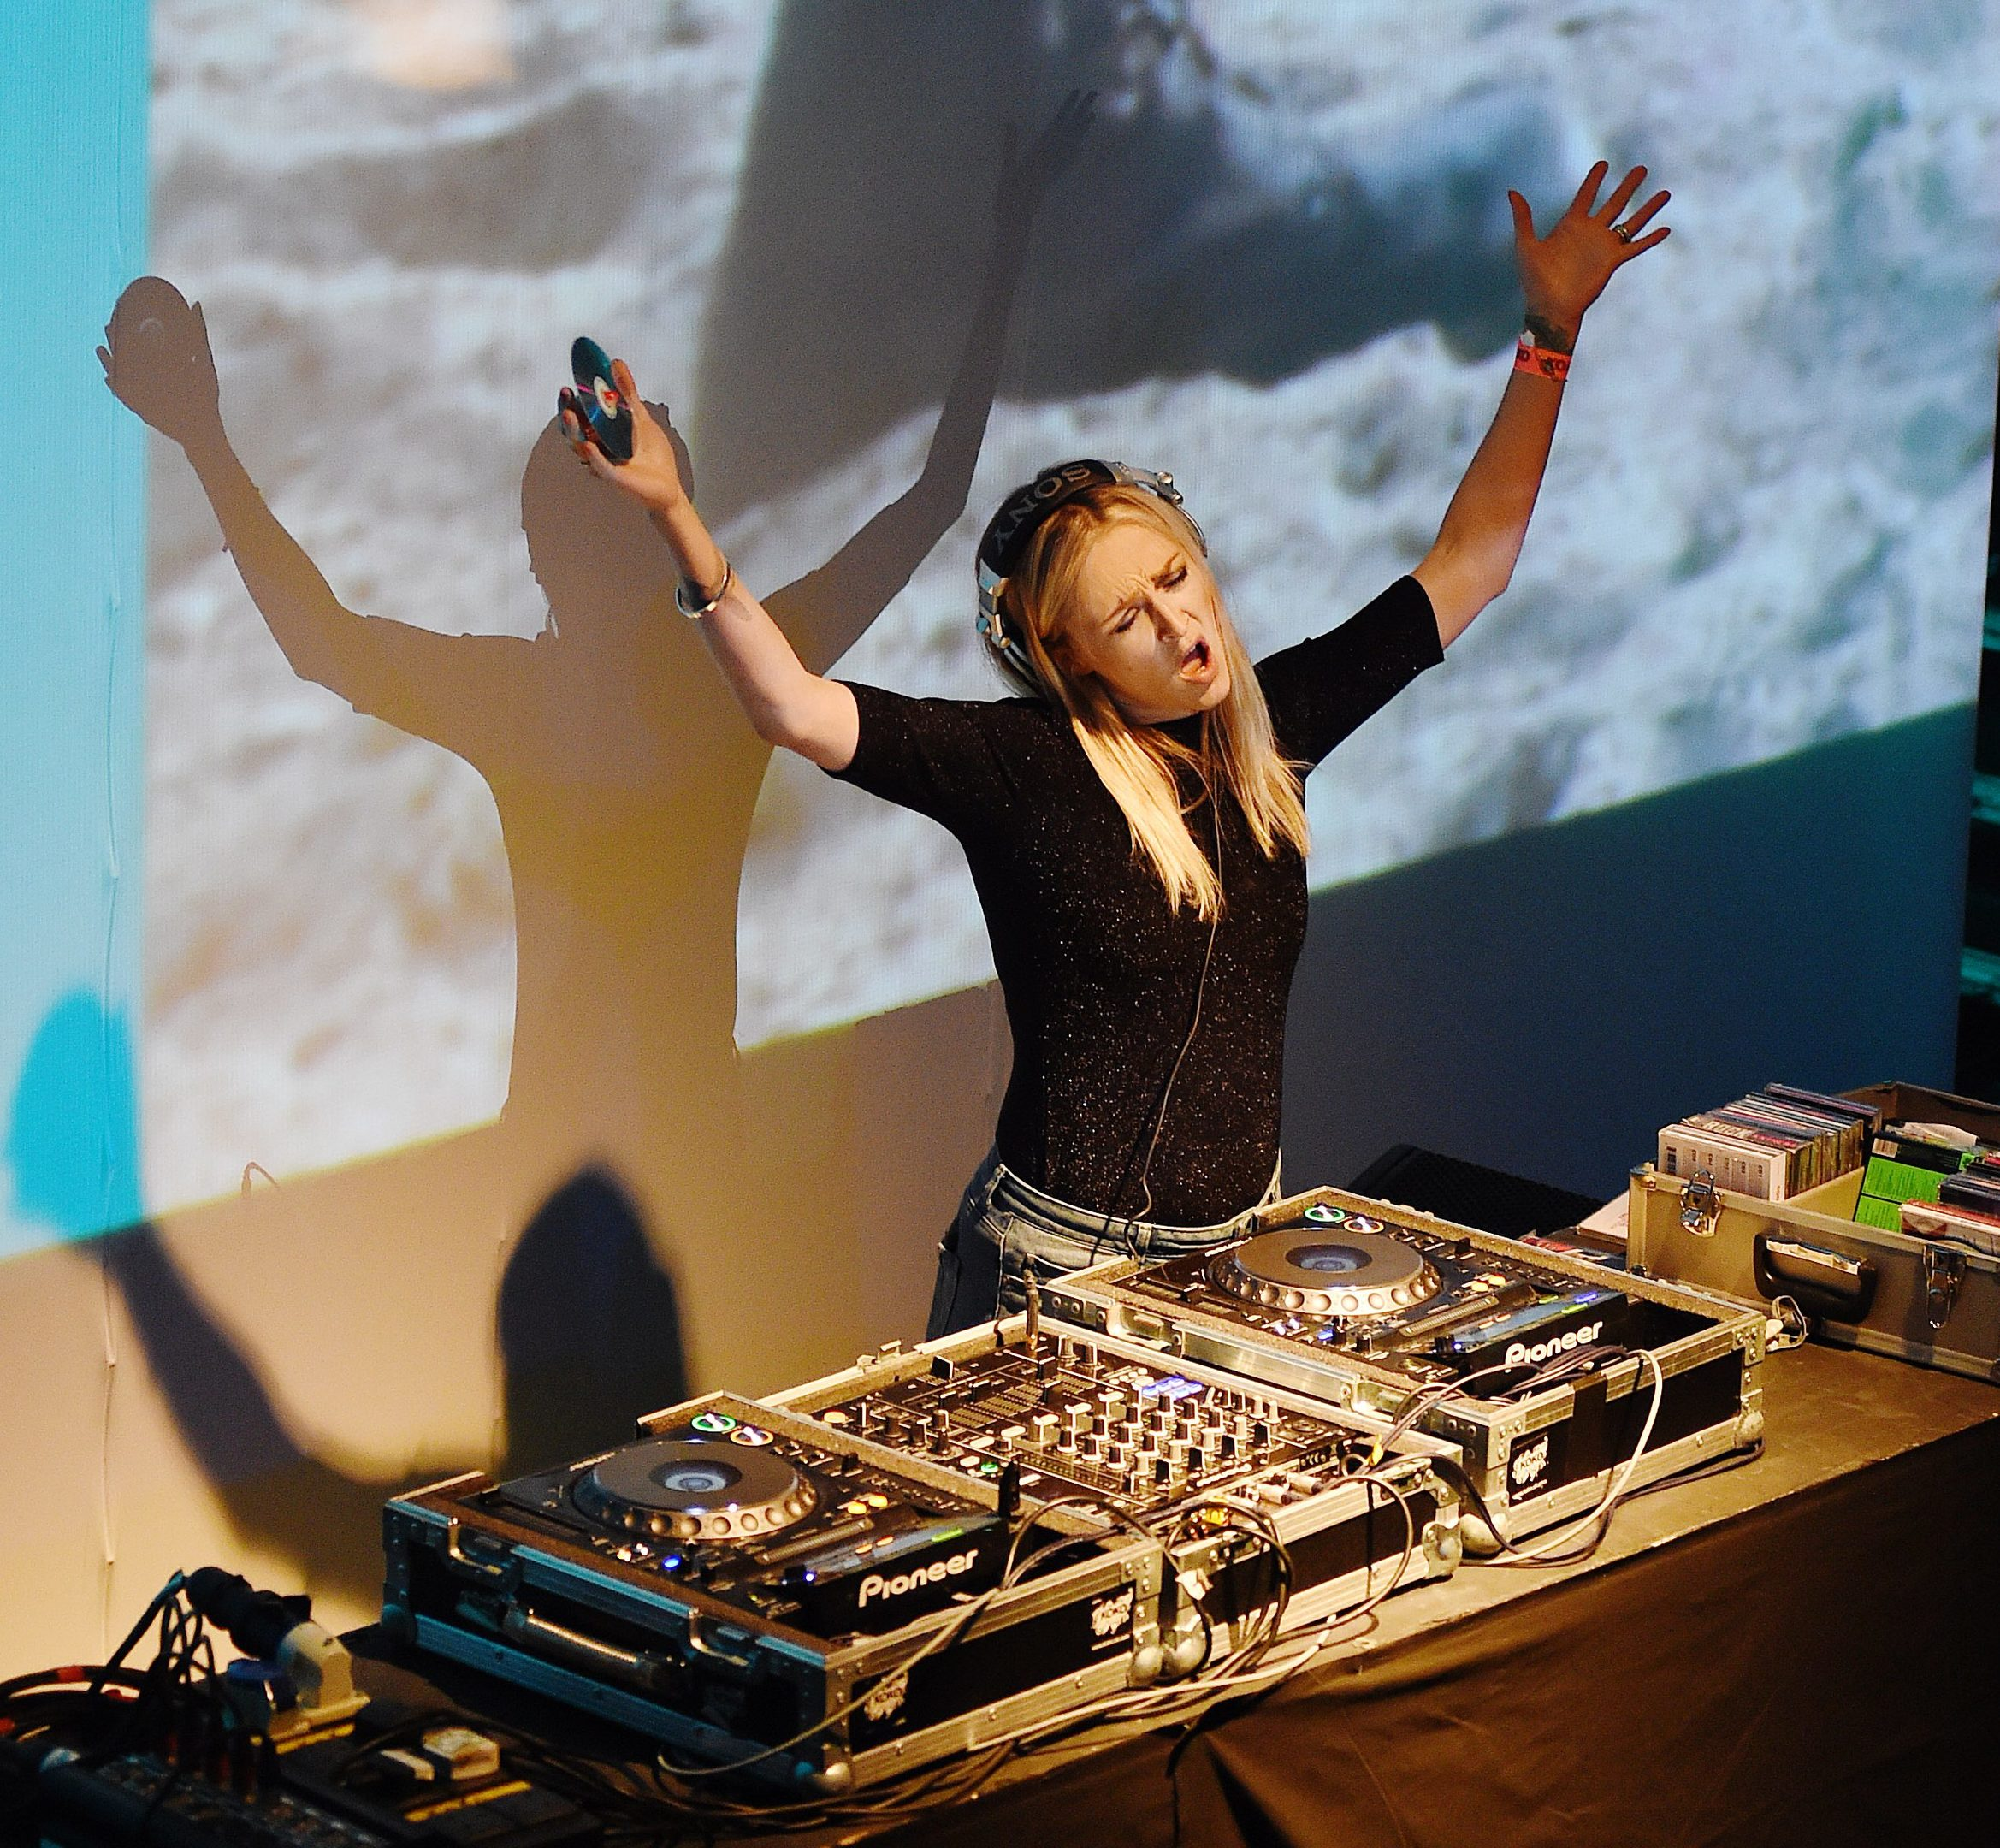 Fearne Cotton performs a DJ set at the Bing Wrap Party during Advertising Week Europe 2016 at KOKO in London (Tabatha Fireman/Getty Images)